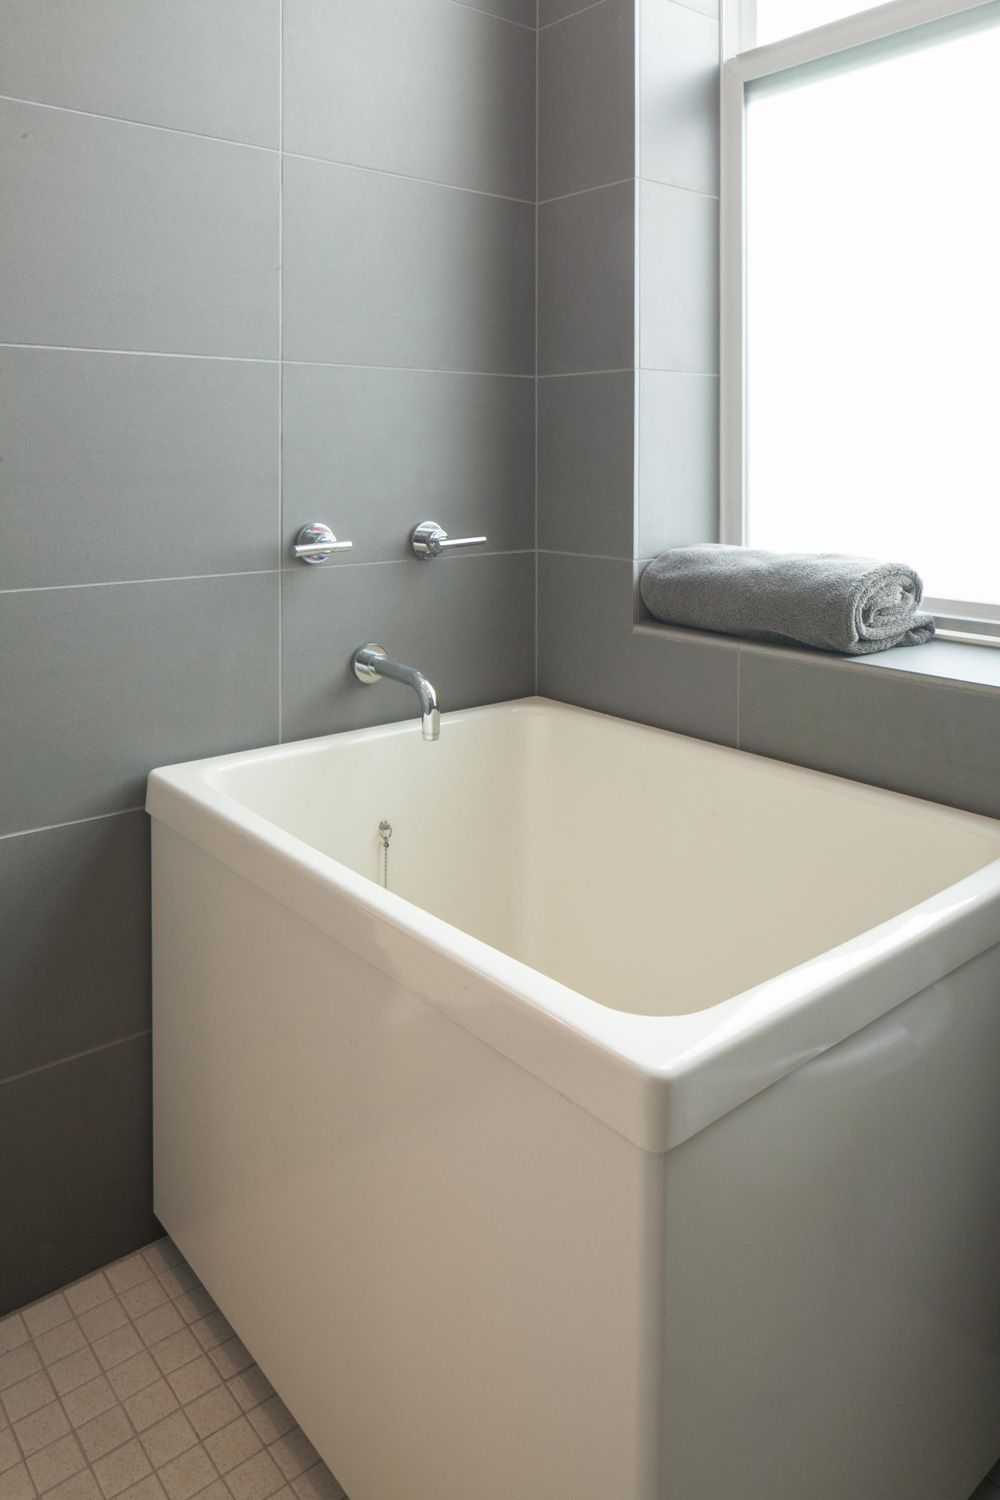 japanese soaking tub ofuro tub square with a built in